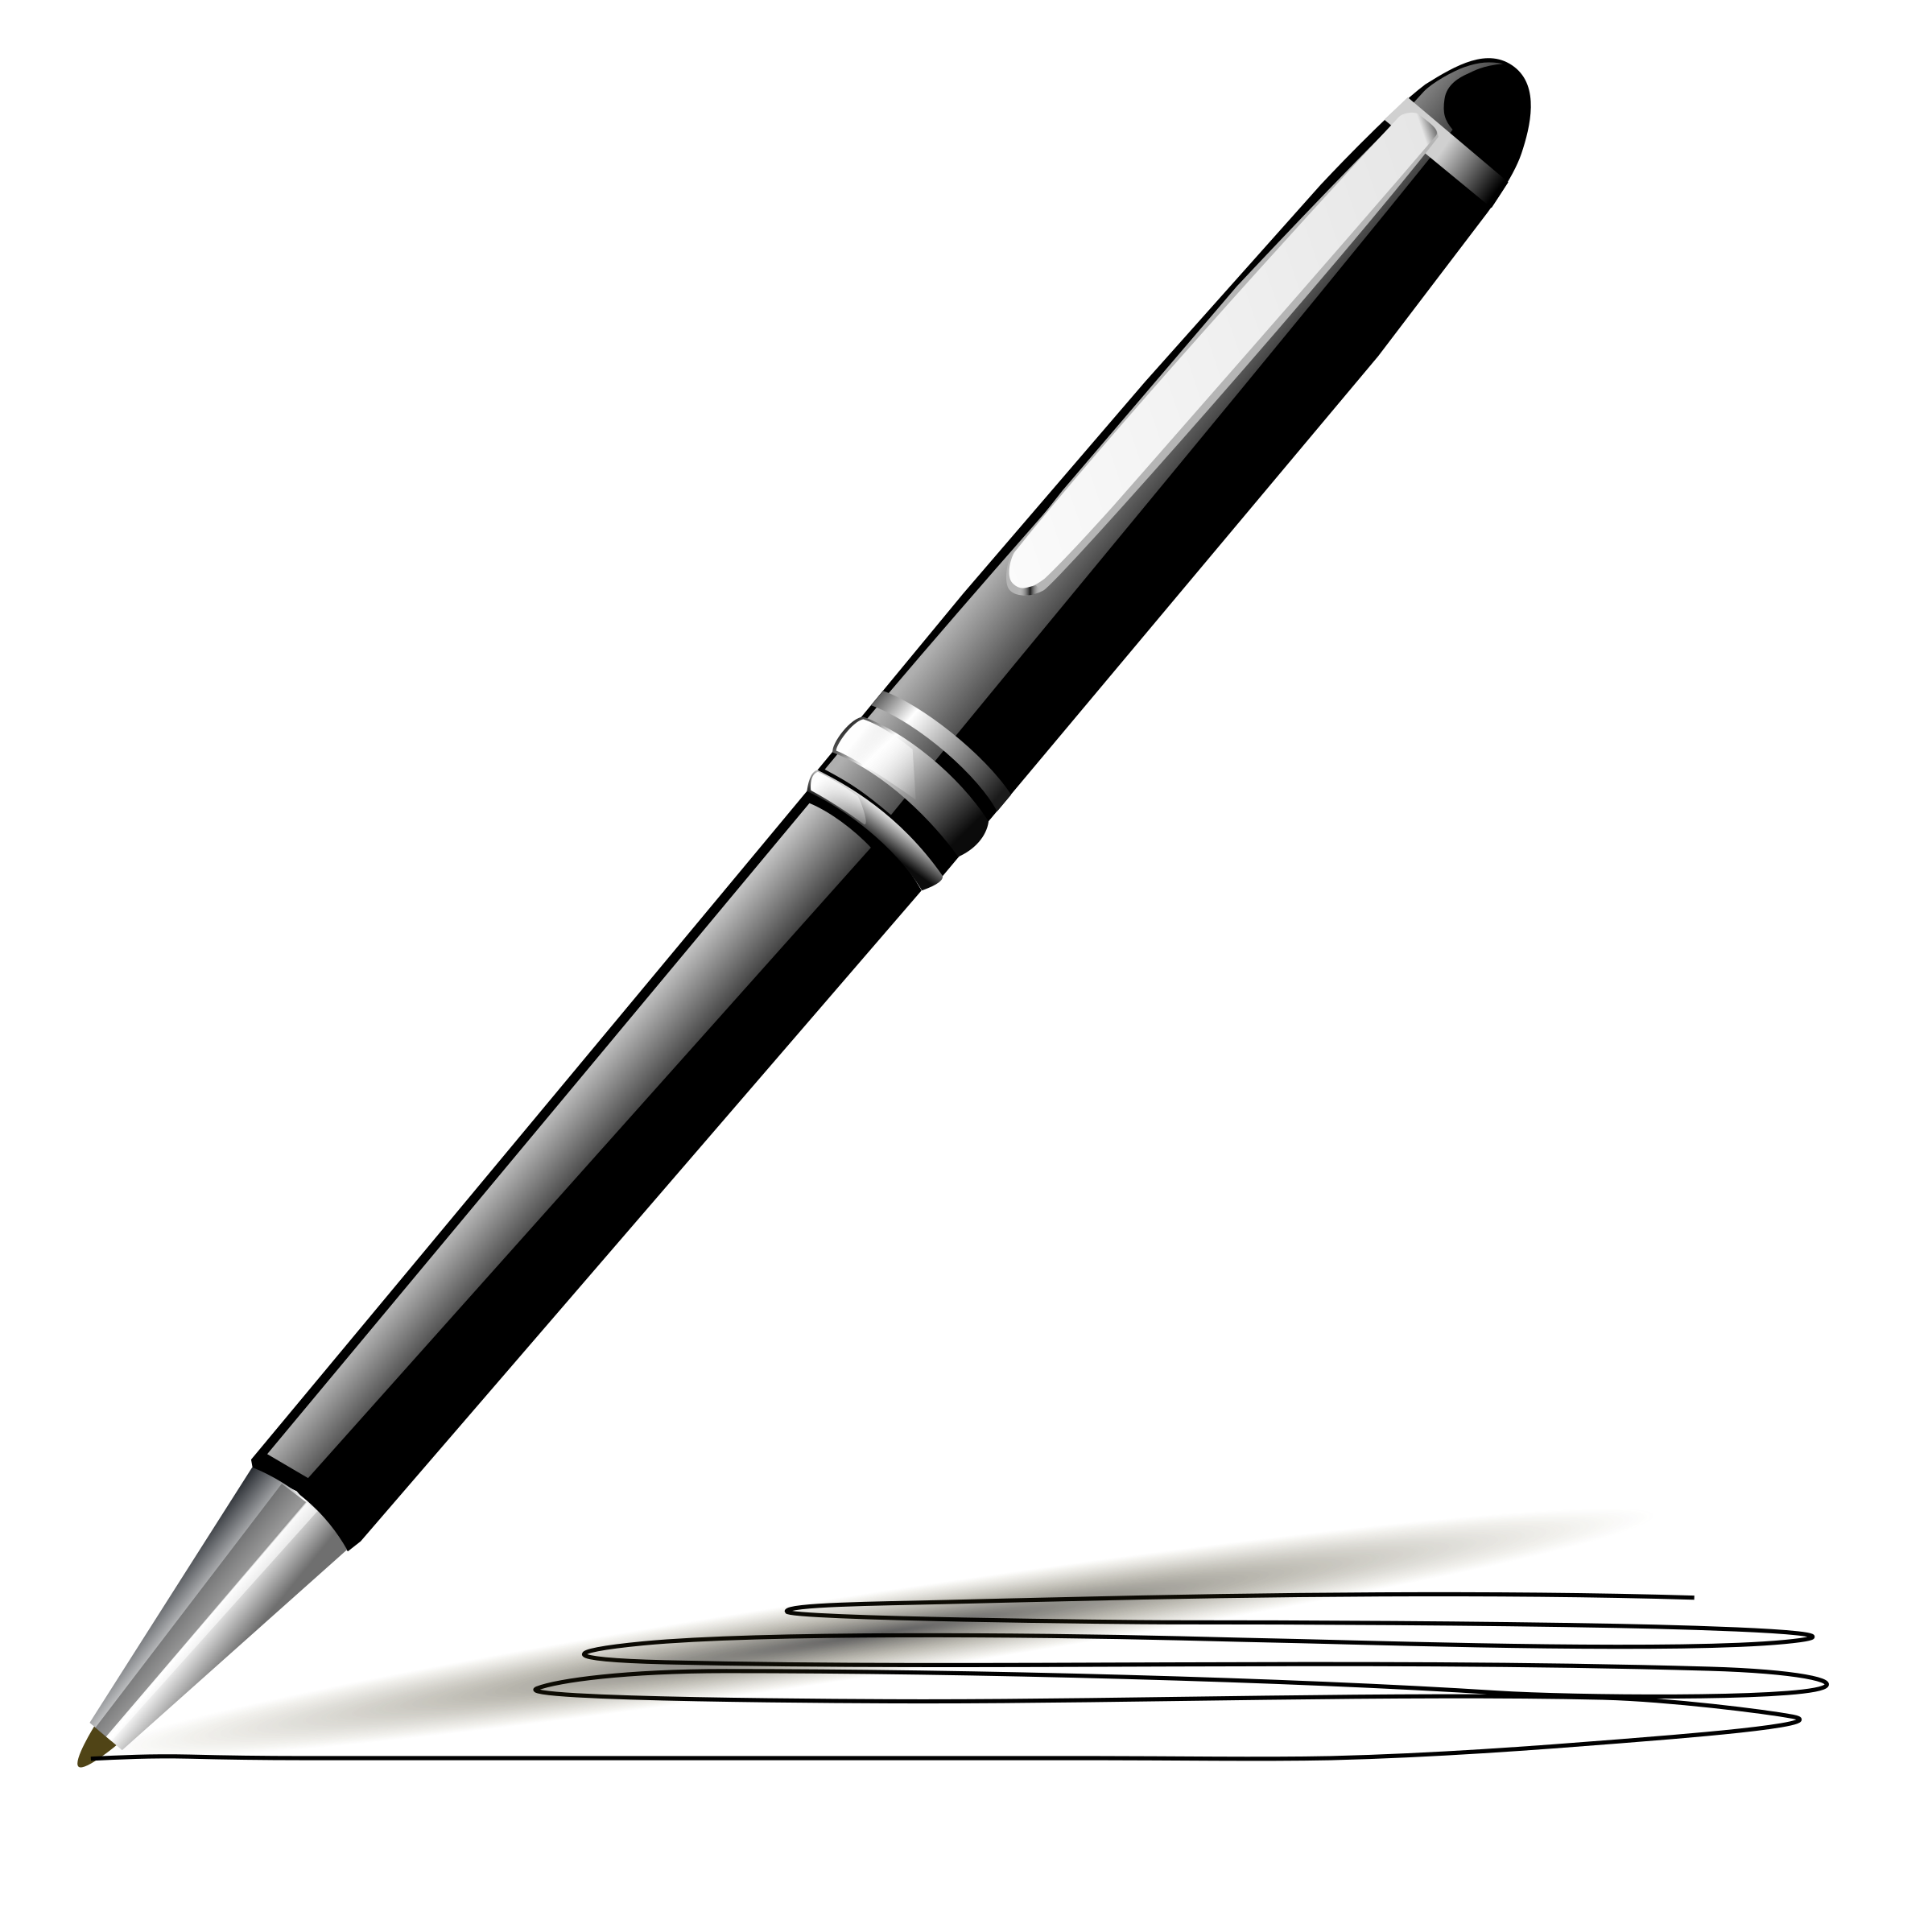 clipart style pen microsoft office 2010 clipart not showing up microsoft office 2007 clipart download